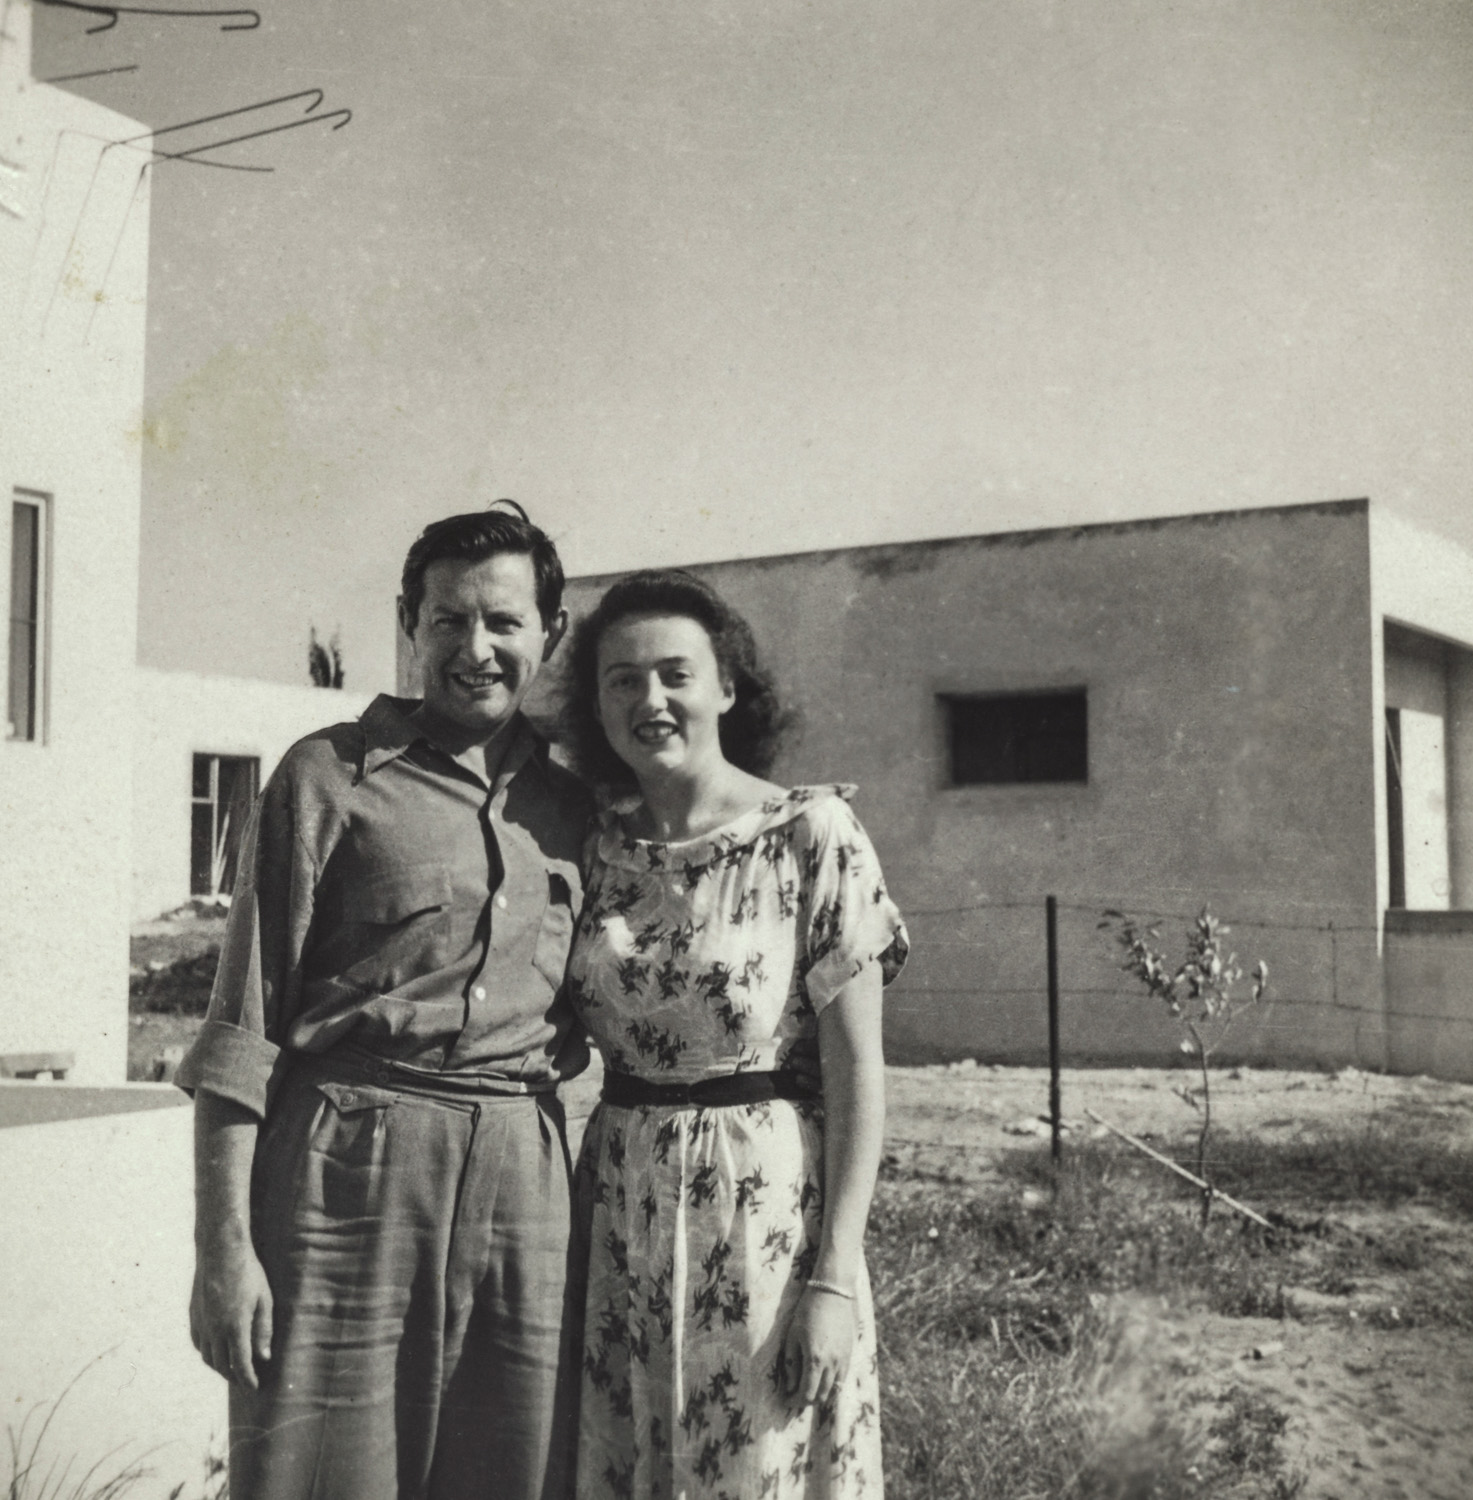 Lily and Chaim - Israel, 1950